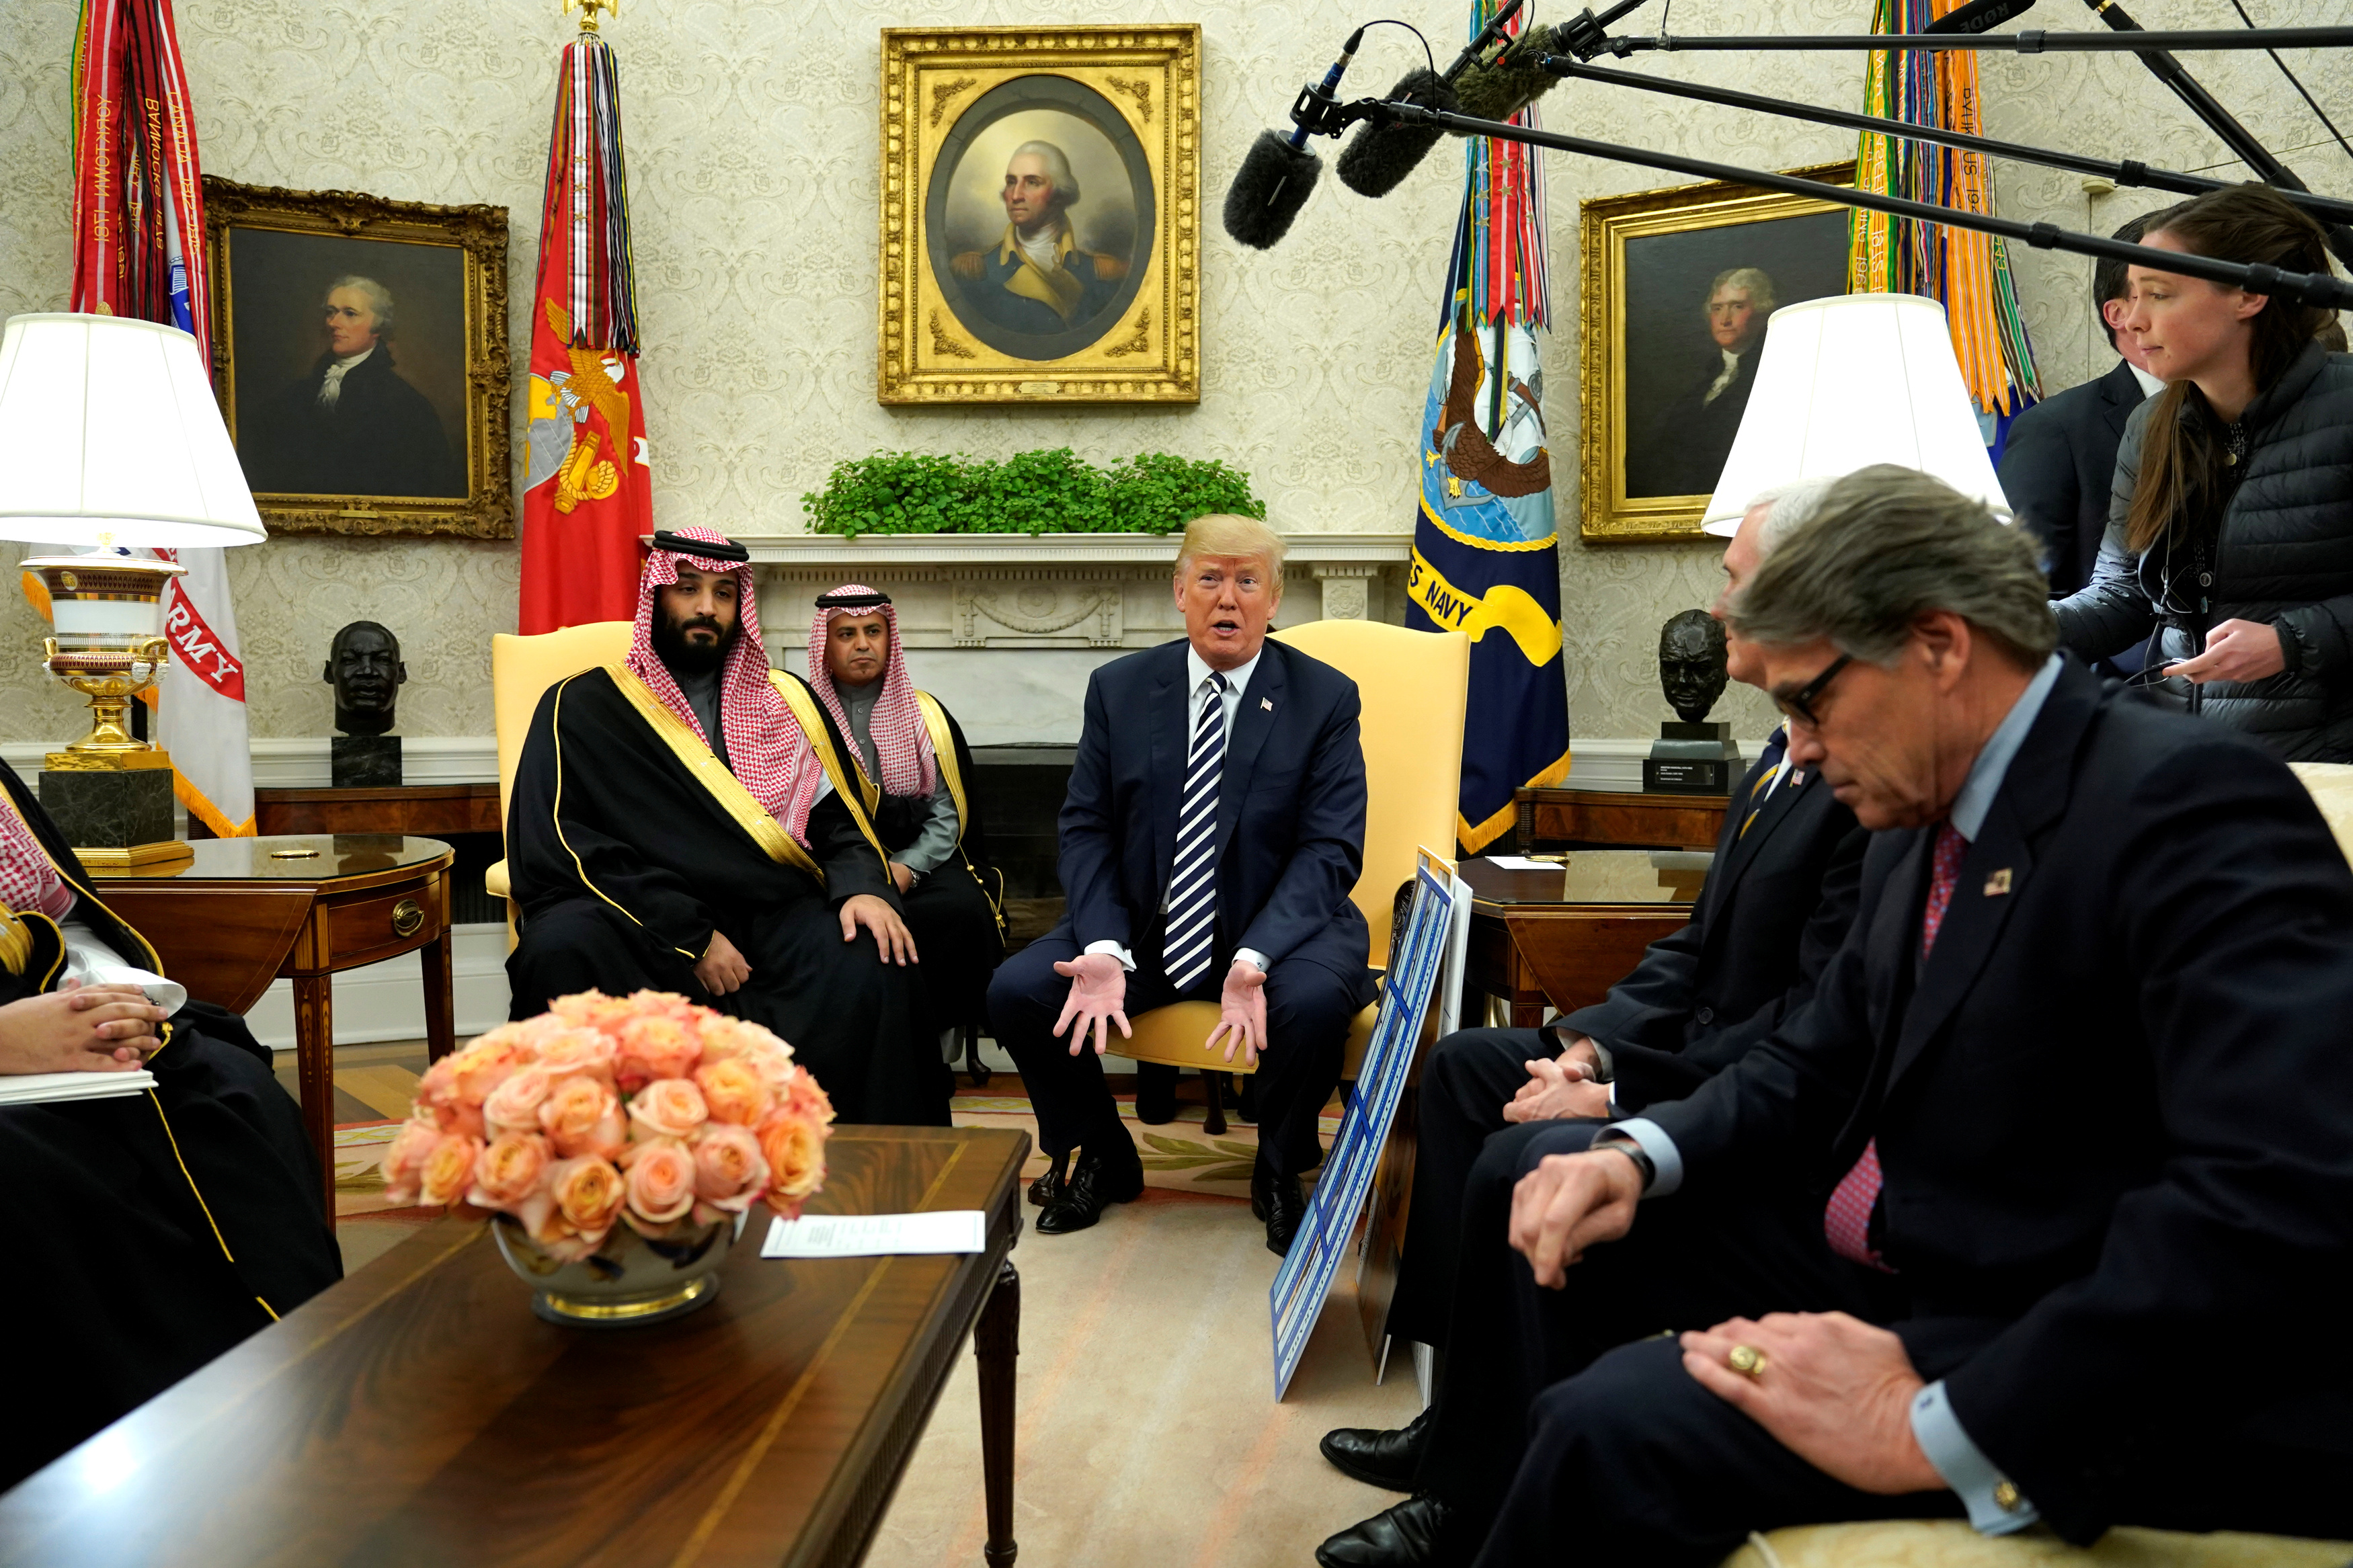 U.S. President Donald Trump, flanked by Energy SecretaryRick Perry, delivers remarks as he welcomes Saudi Arabia's Crown Prince Mohammed bin Salman in the Oval Office at the White House in Washington, March 20, 2018.